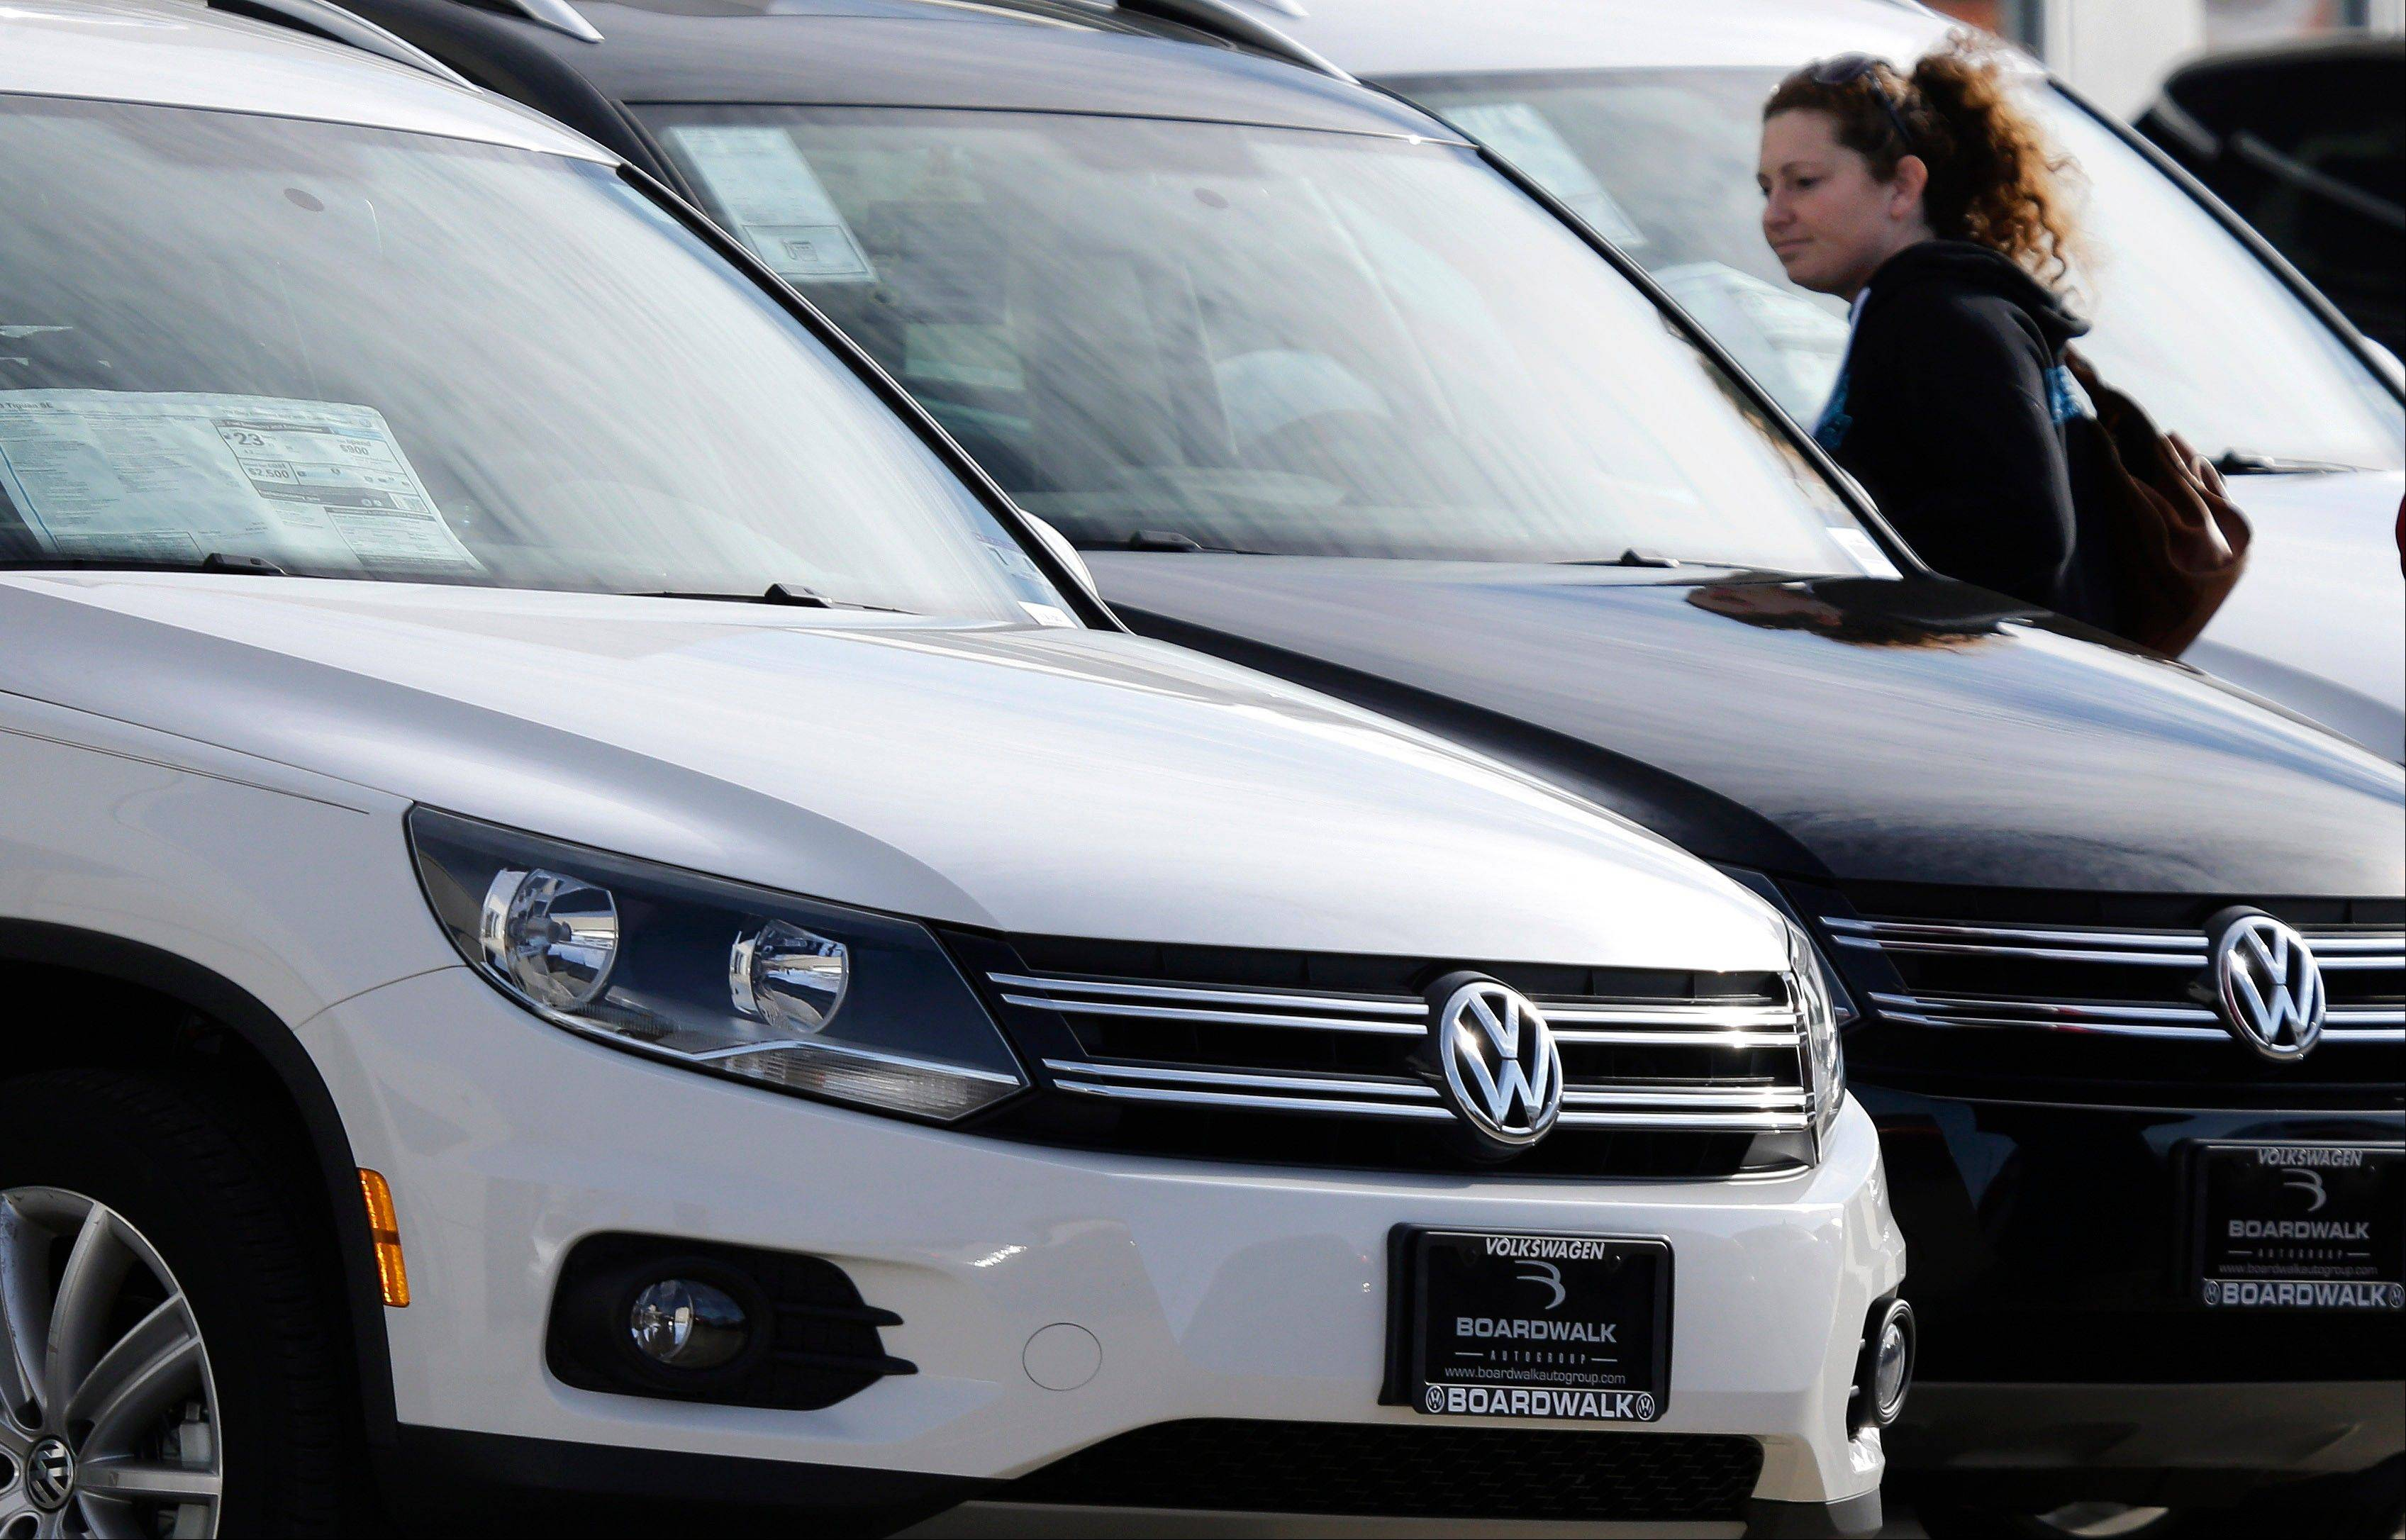 Industry analysts expect February�s sales to be up about 7 percent from a year earlier as pent-up demand and cheap financing kept the U.S. auto sales recovery powering along. Volkswagen reported its best February since 1973.